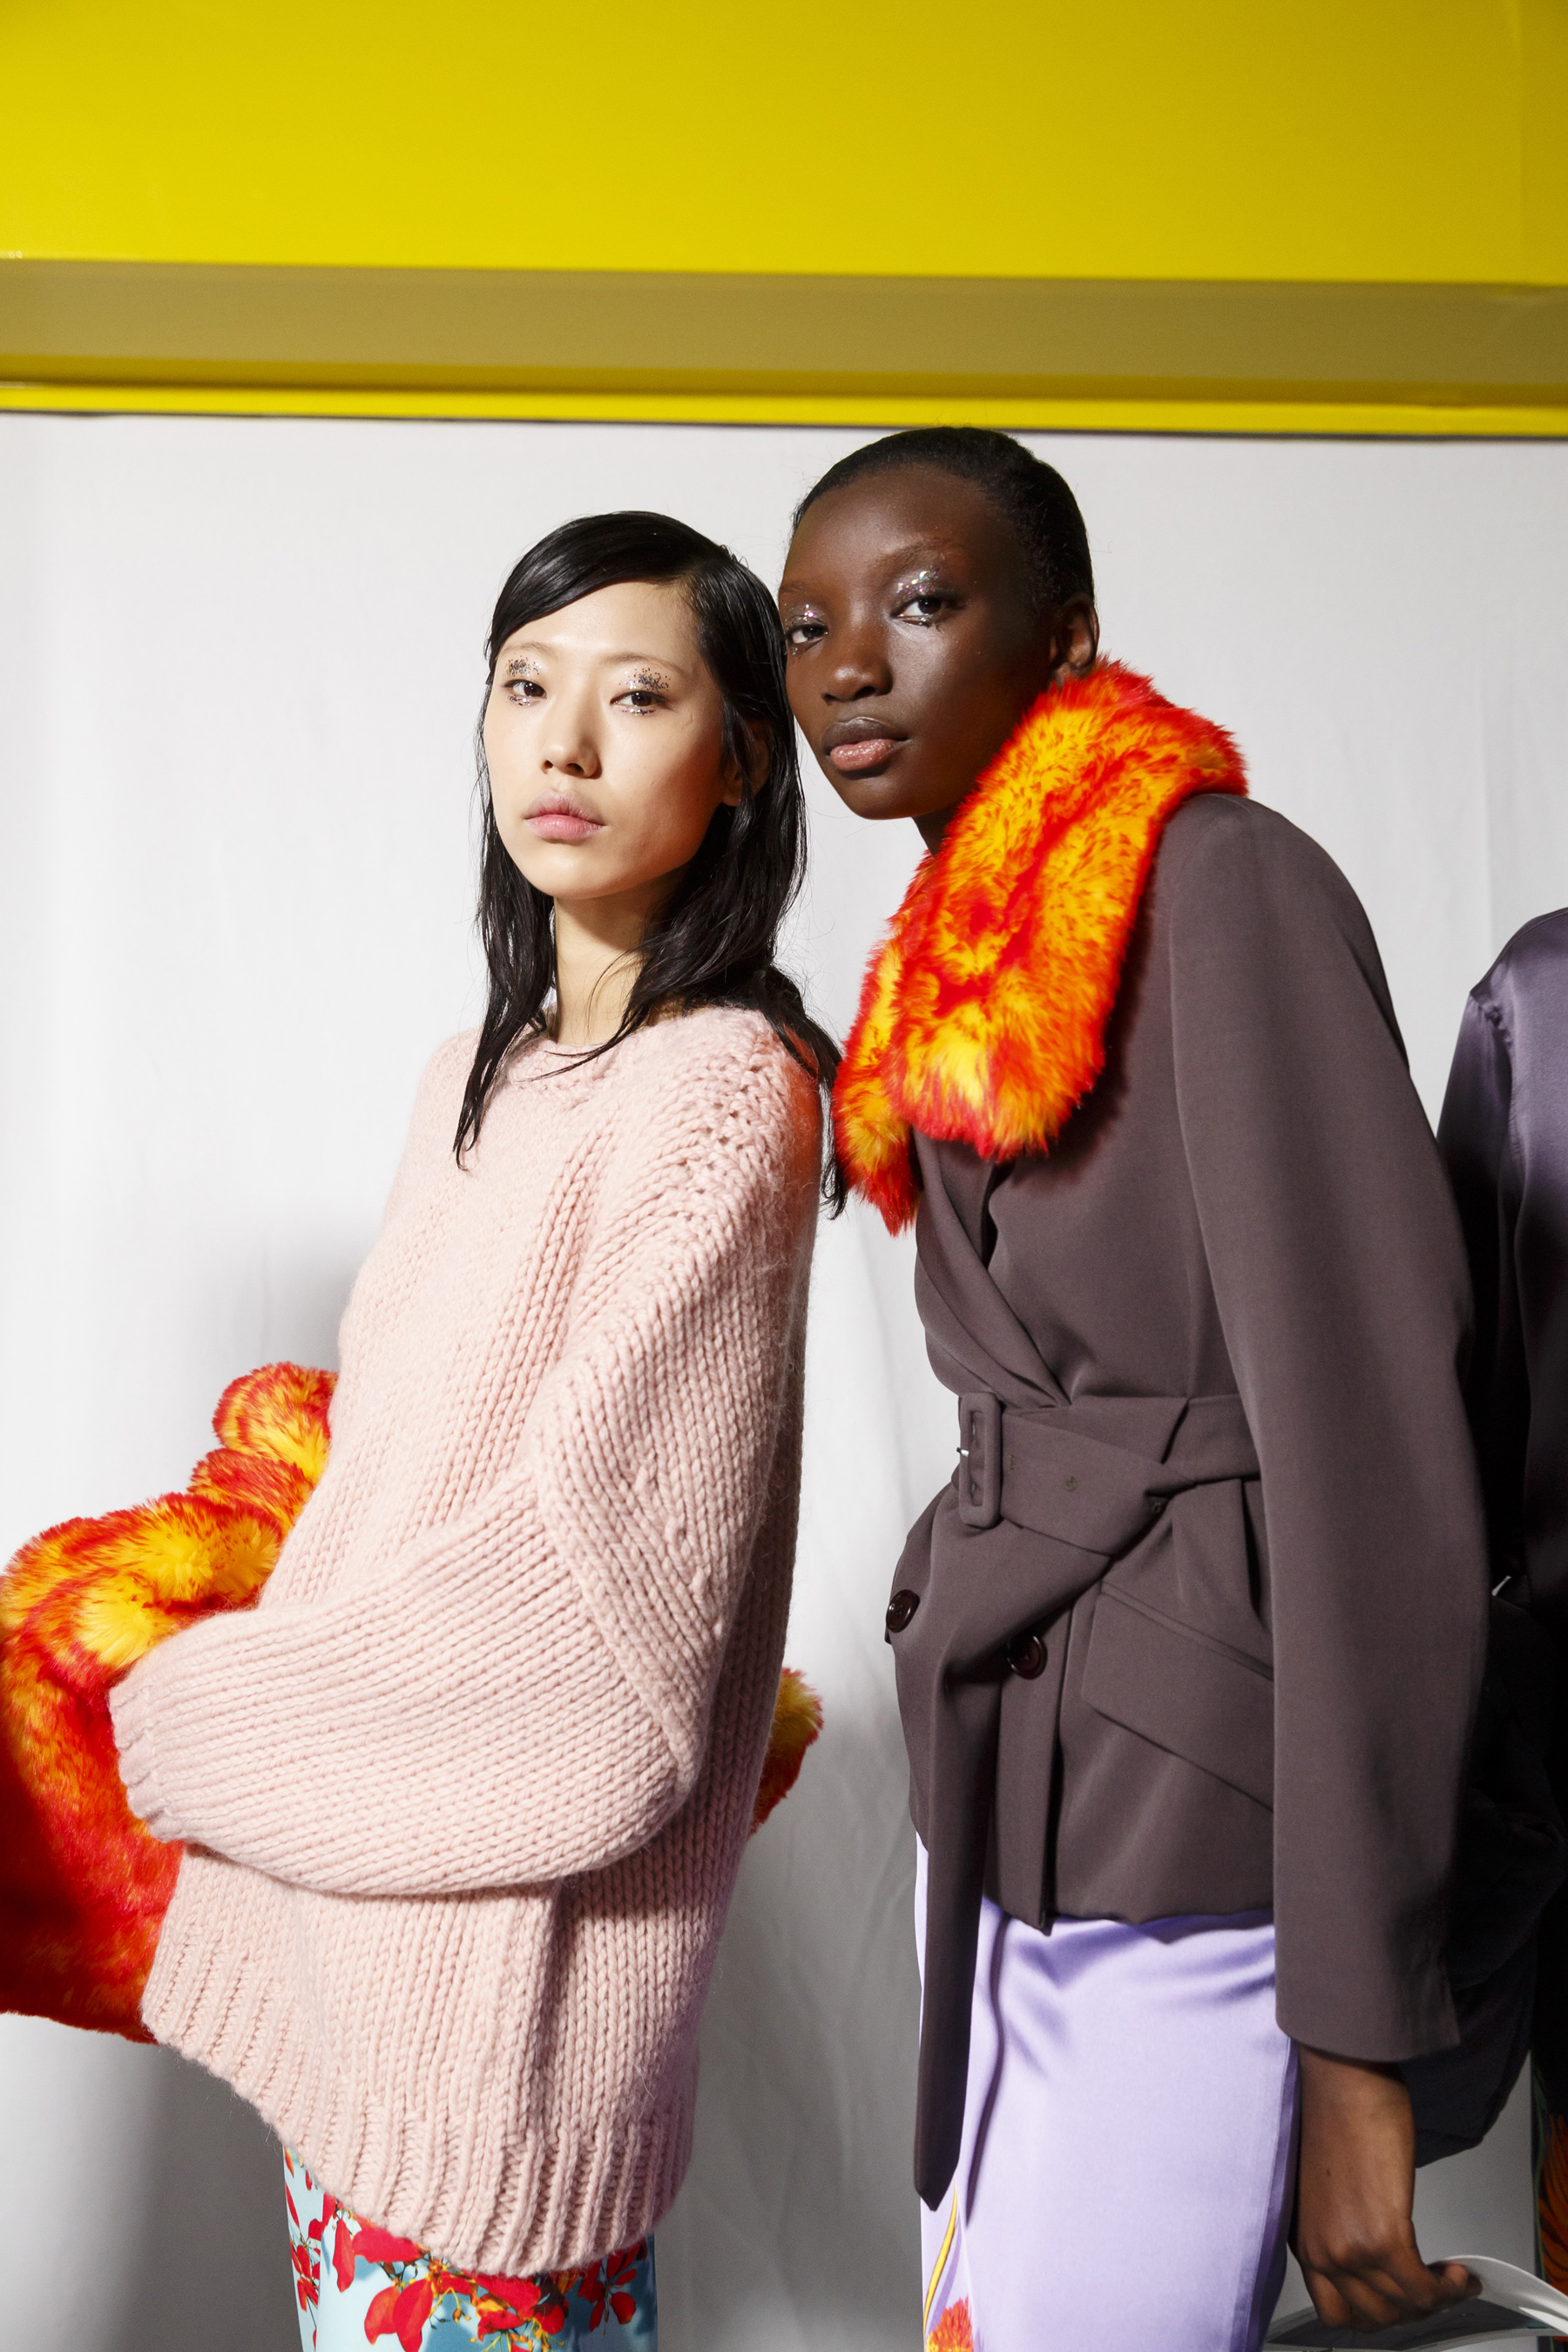 Dries Van Noten Fall 2019 Fashion Show Backstage